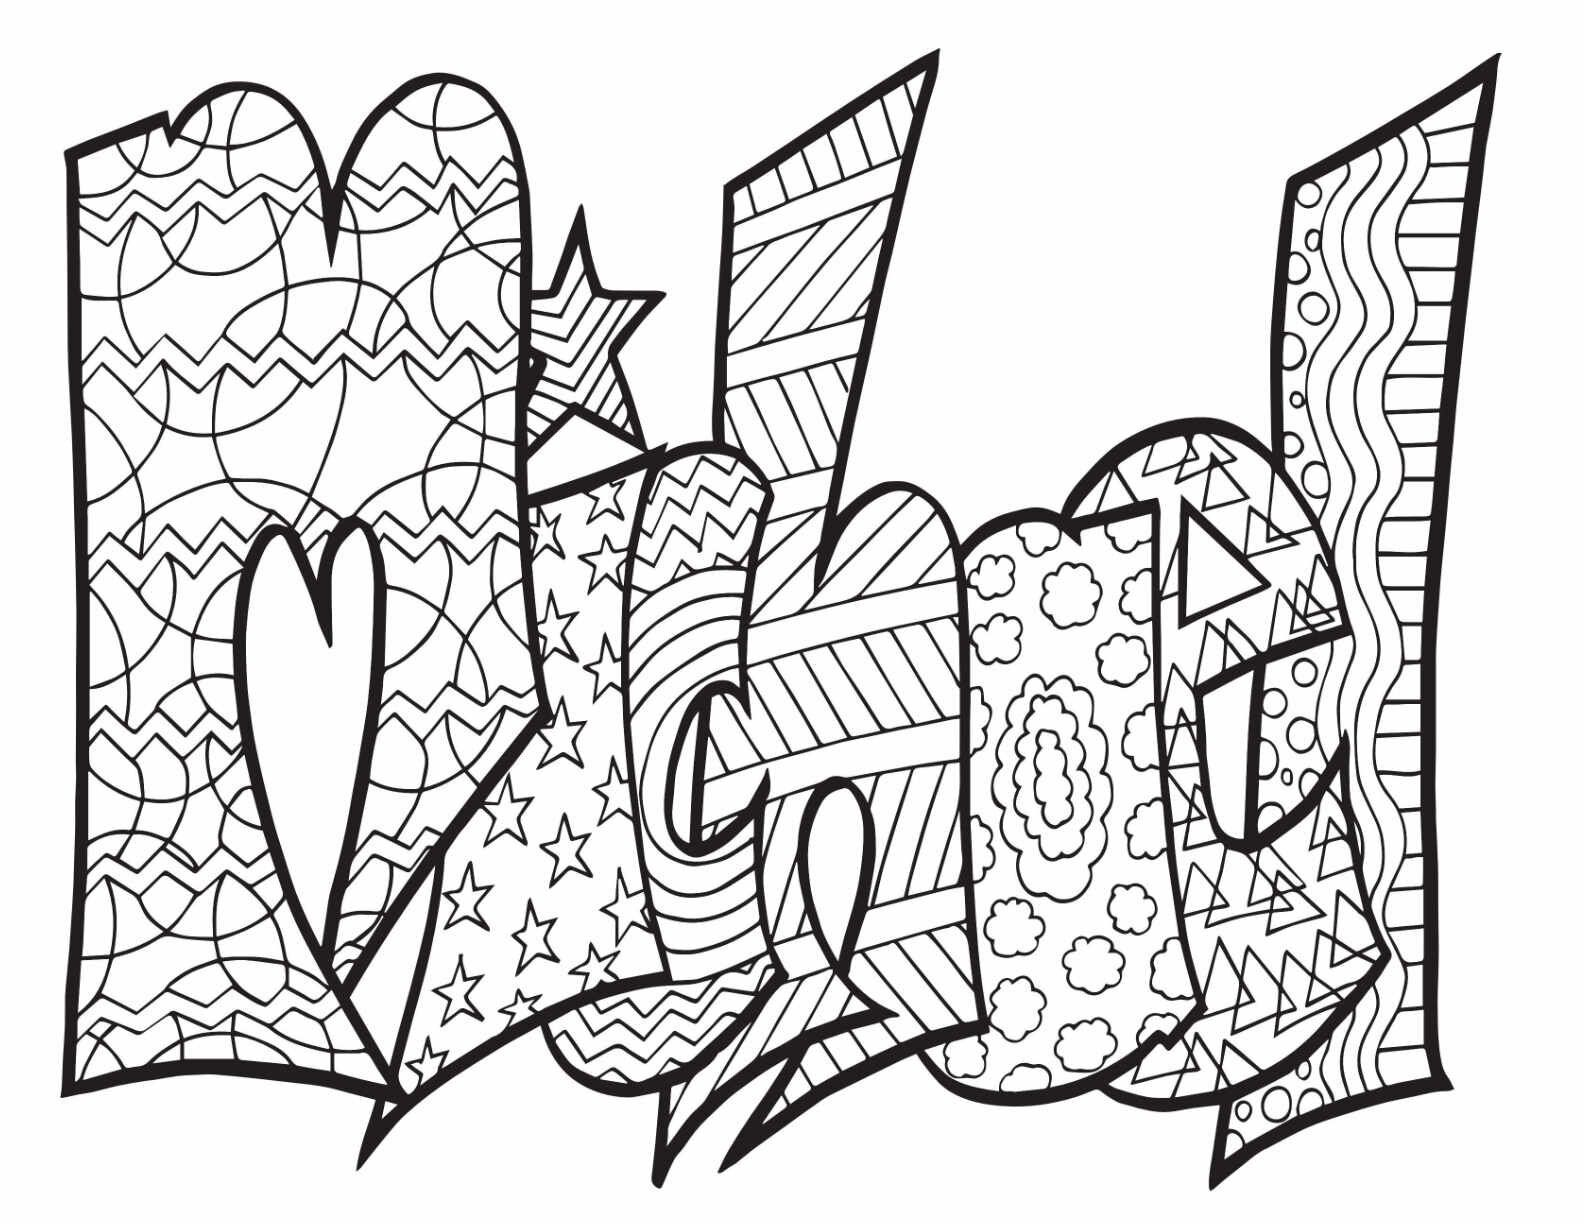 Michael Two Free Printable Coloring Page Stevie Doodles Free Printable Coloring Free Printable Coloring Pages Printable Coloring Pages